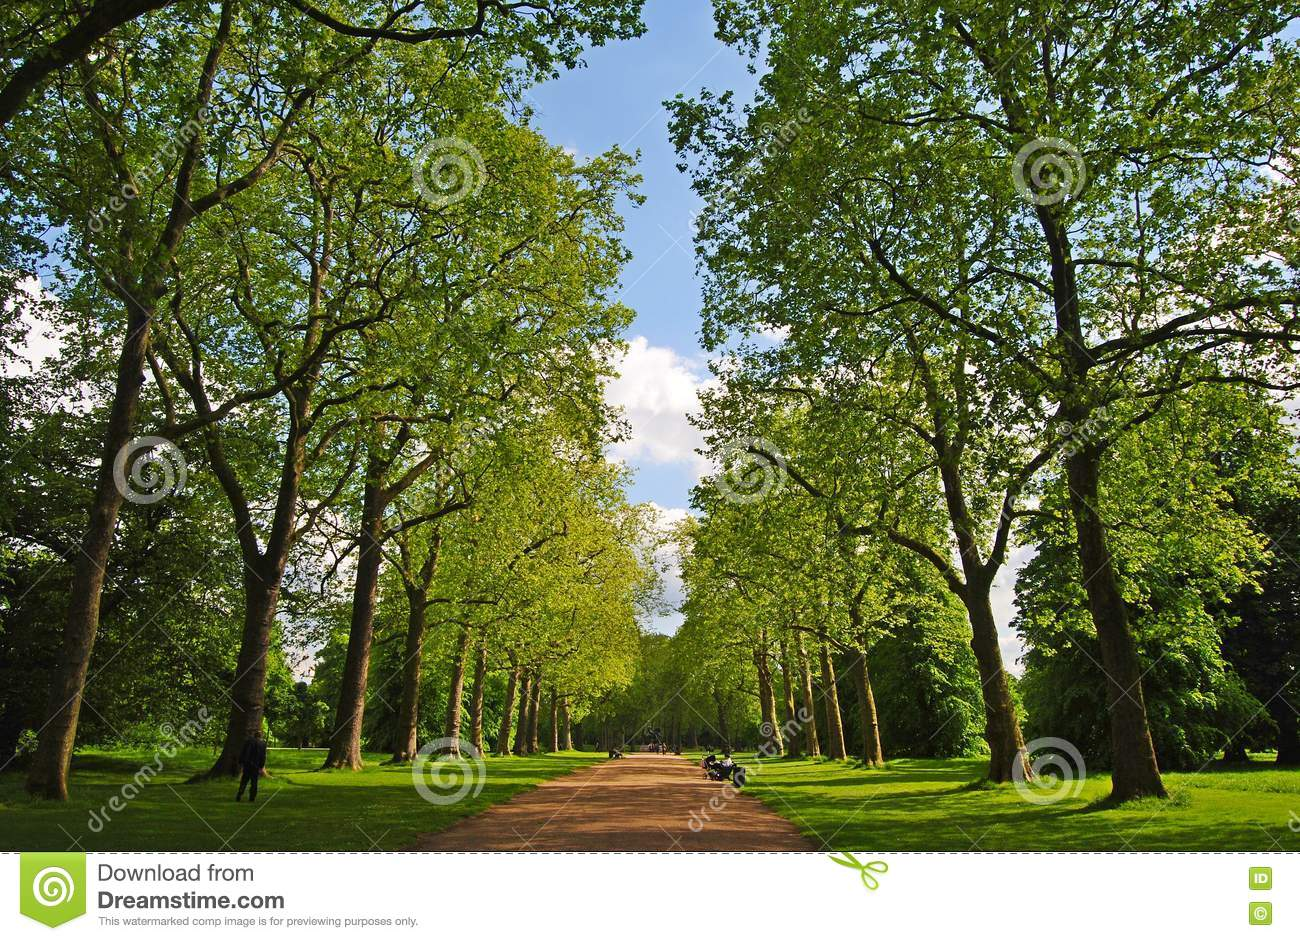 Alley in kensington gardens in london editorial photo for Garden trees london